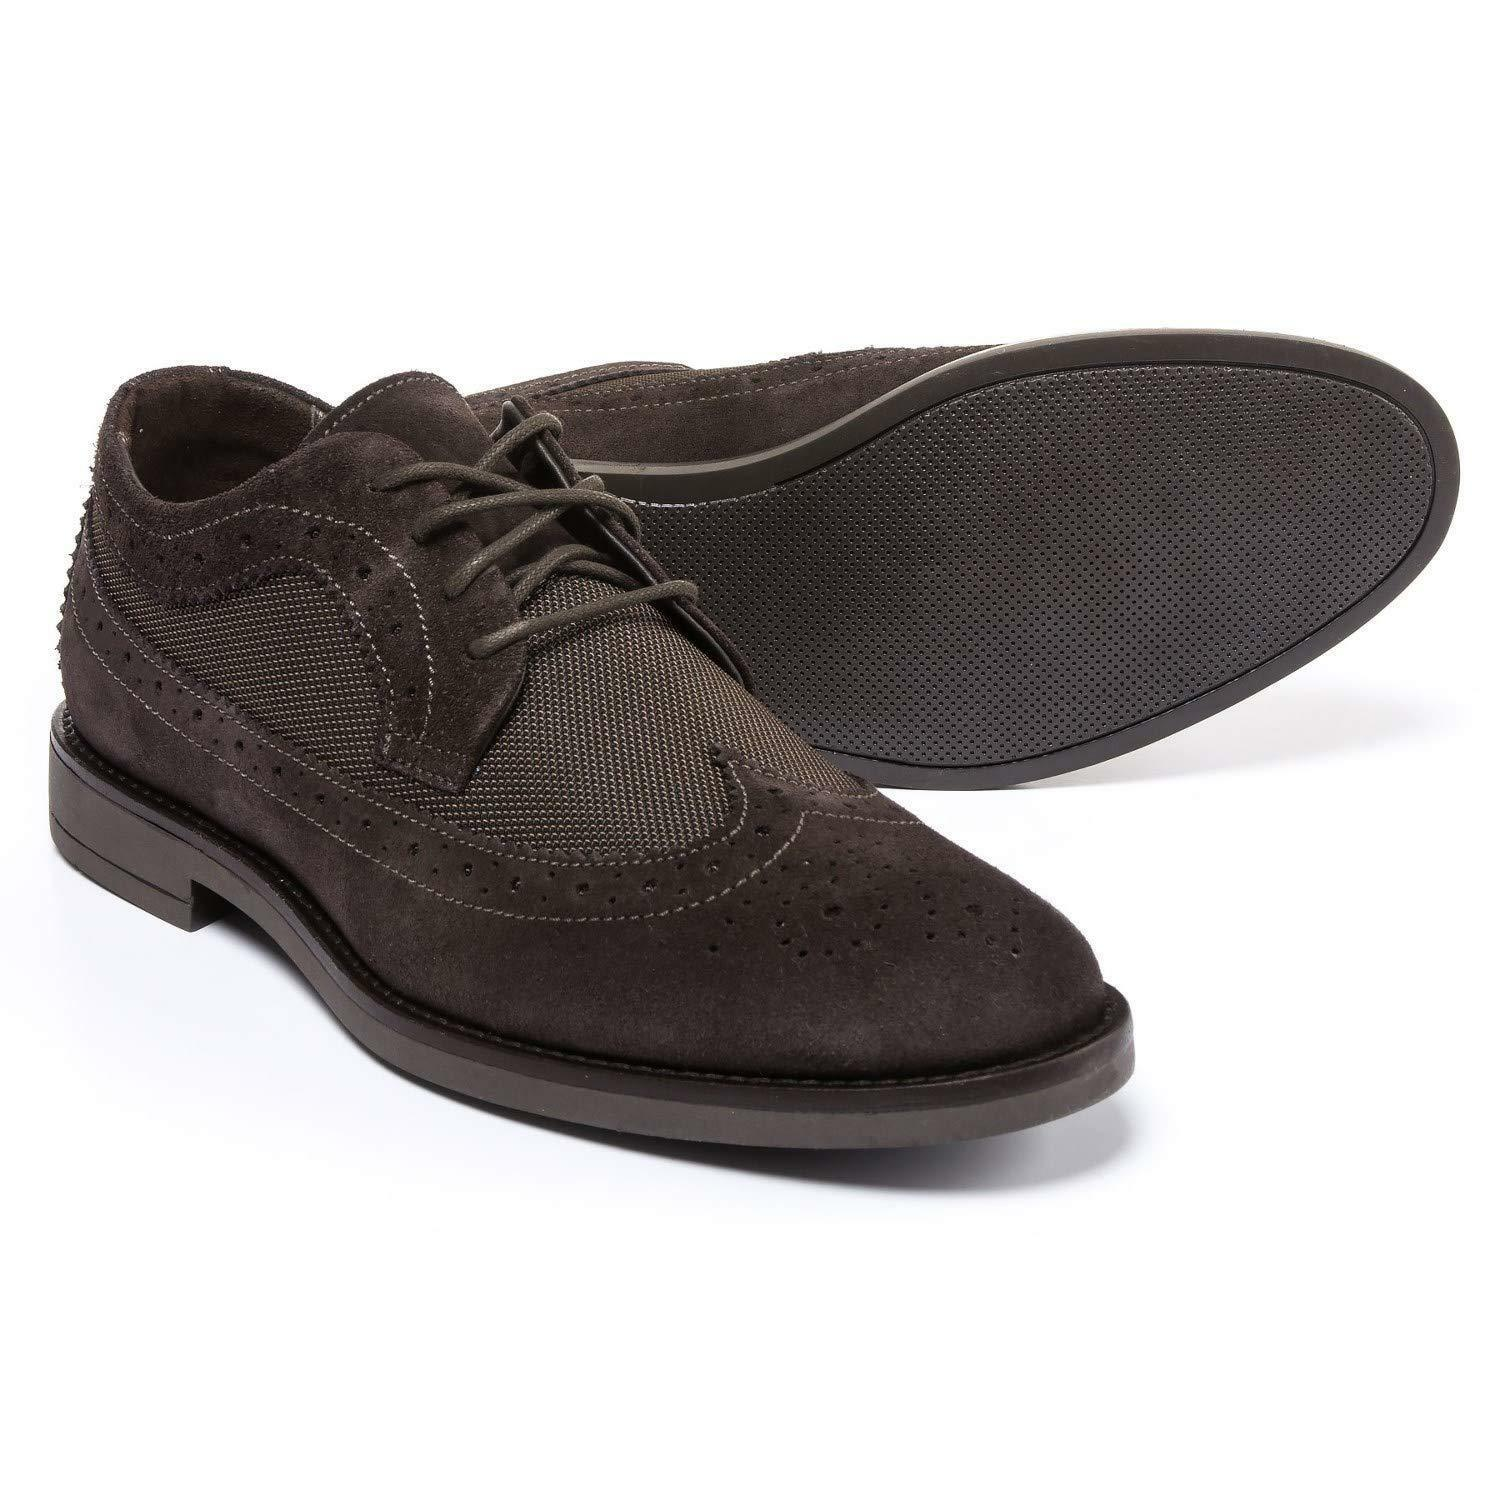 A. Testoni Diffusion Made in Italy Diffusion Testoni Ante and Nylon Oxford Zapatos (for Hombre) 0c5a13